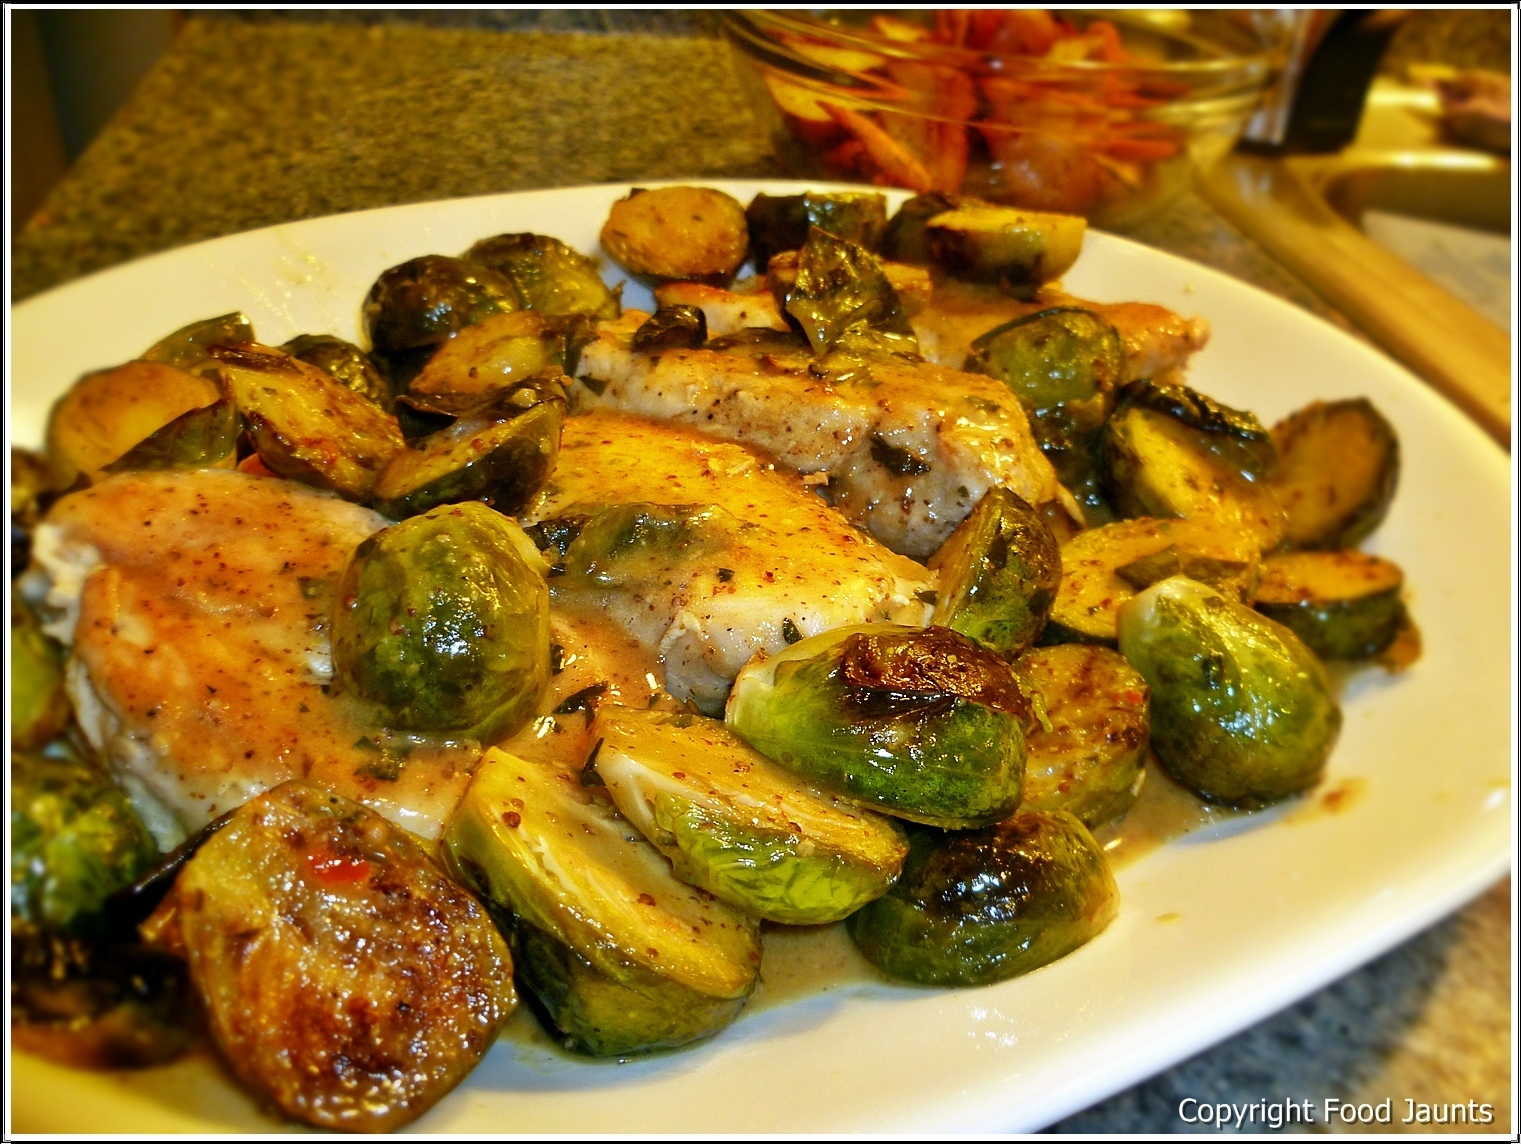 Chicken with Roasted Brussel Sprouts and Mustard Sauce